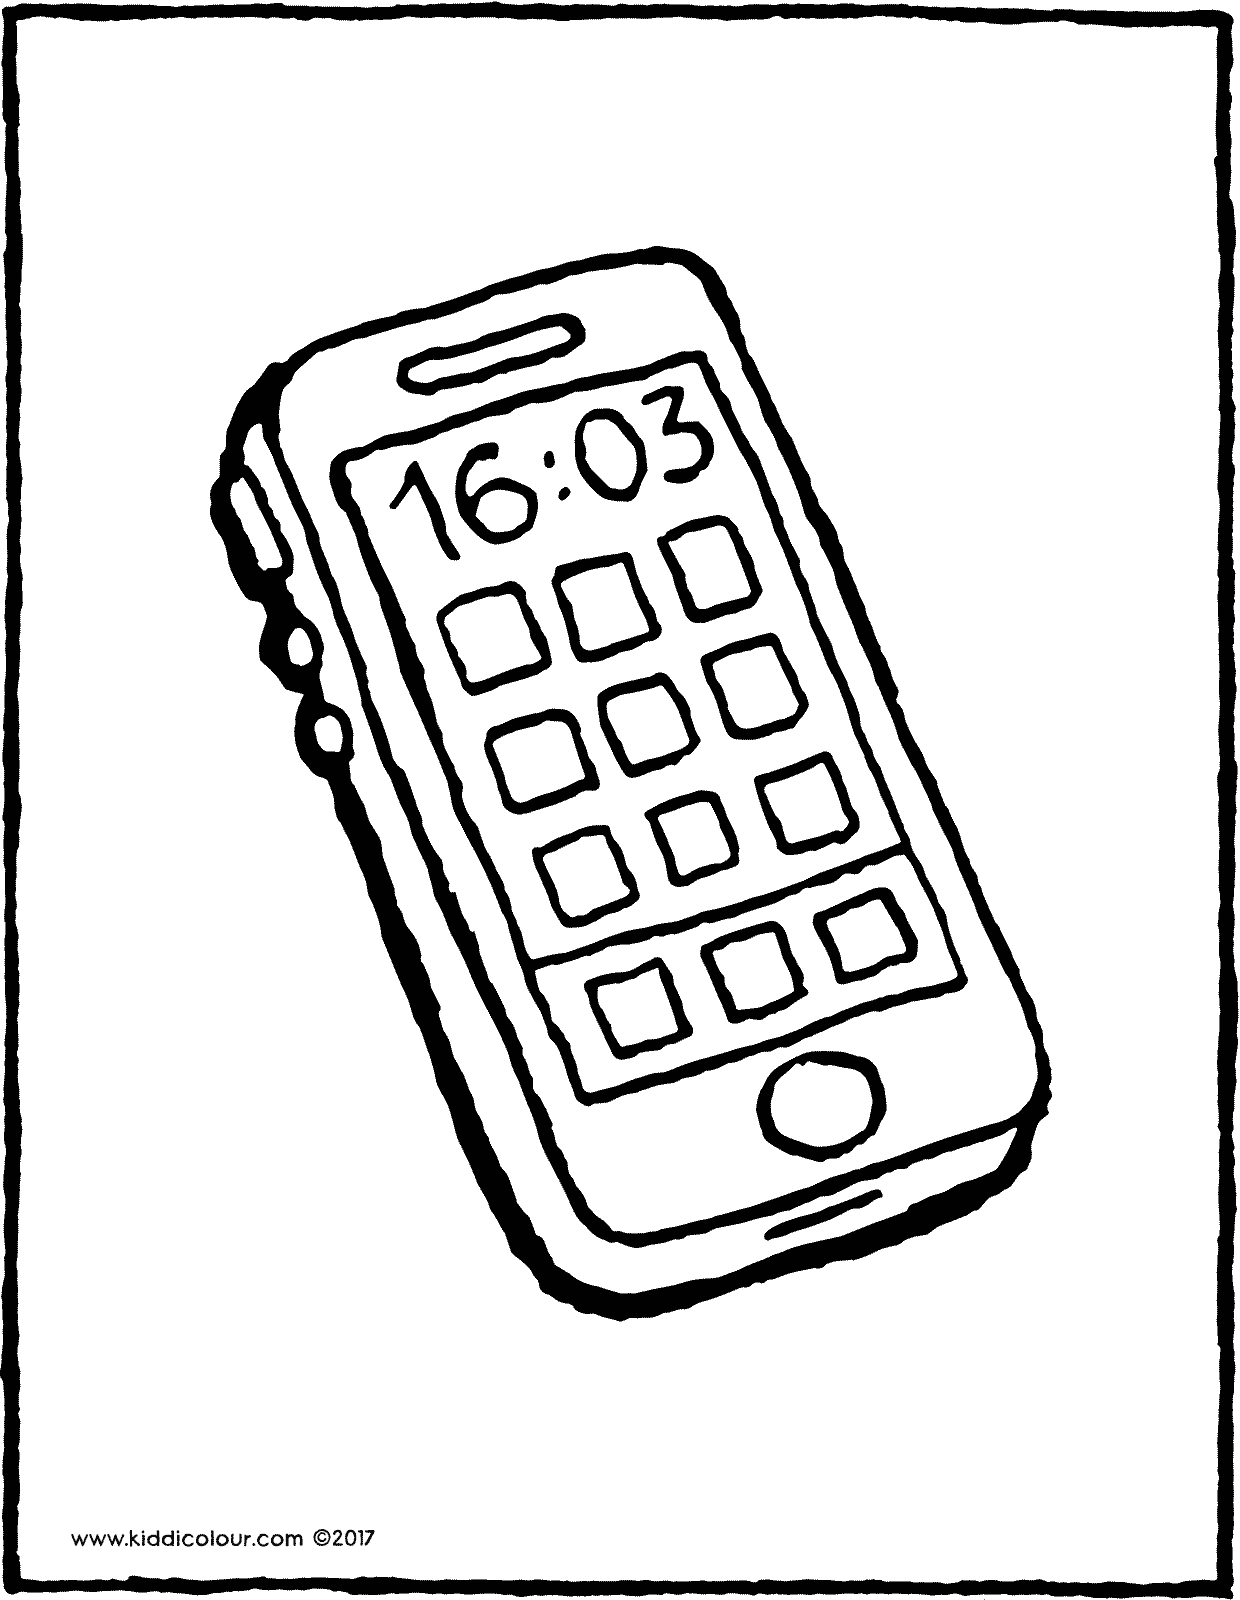 mobile phone colouring page drawing picture 01V